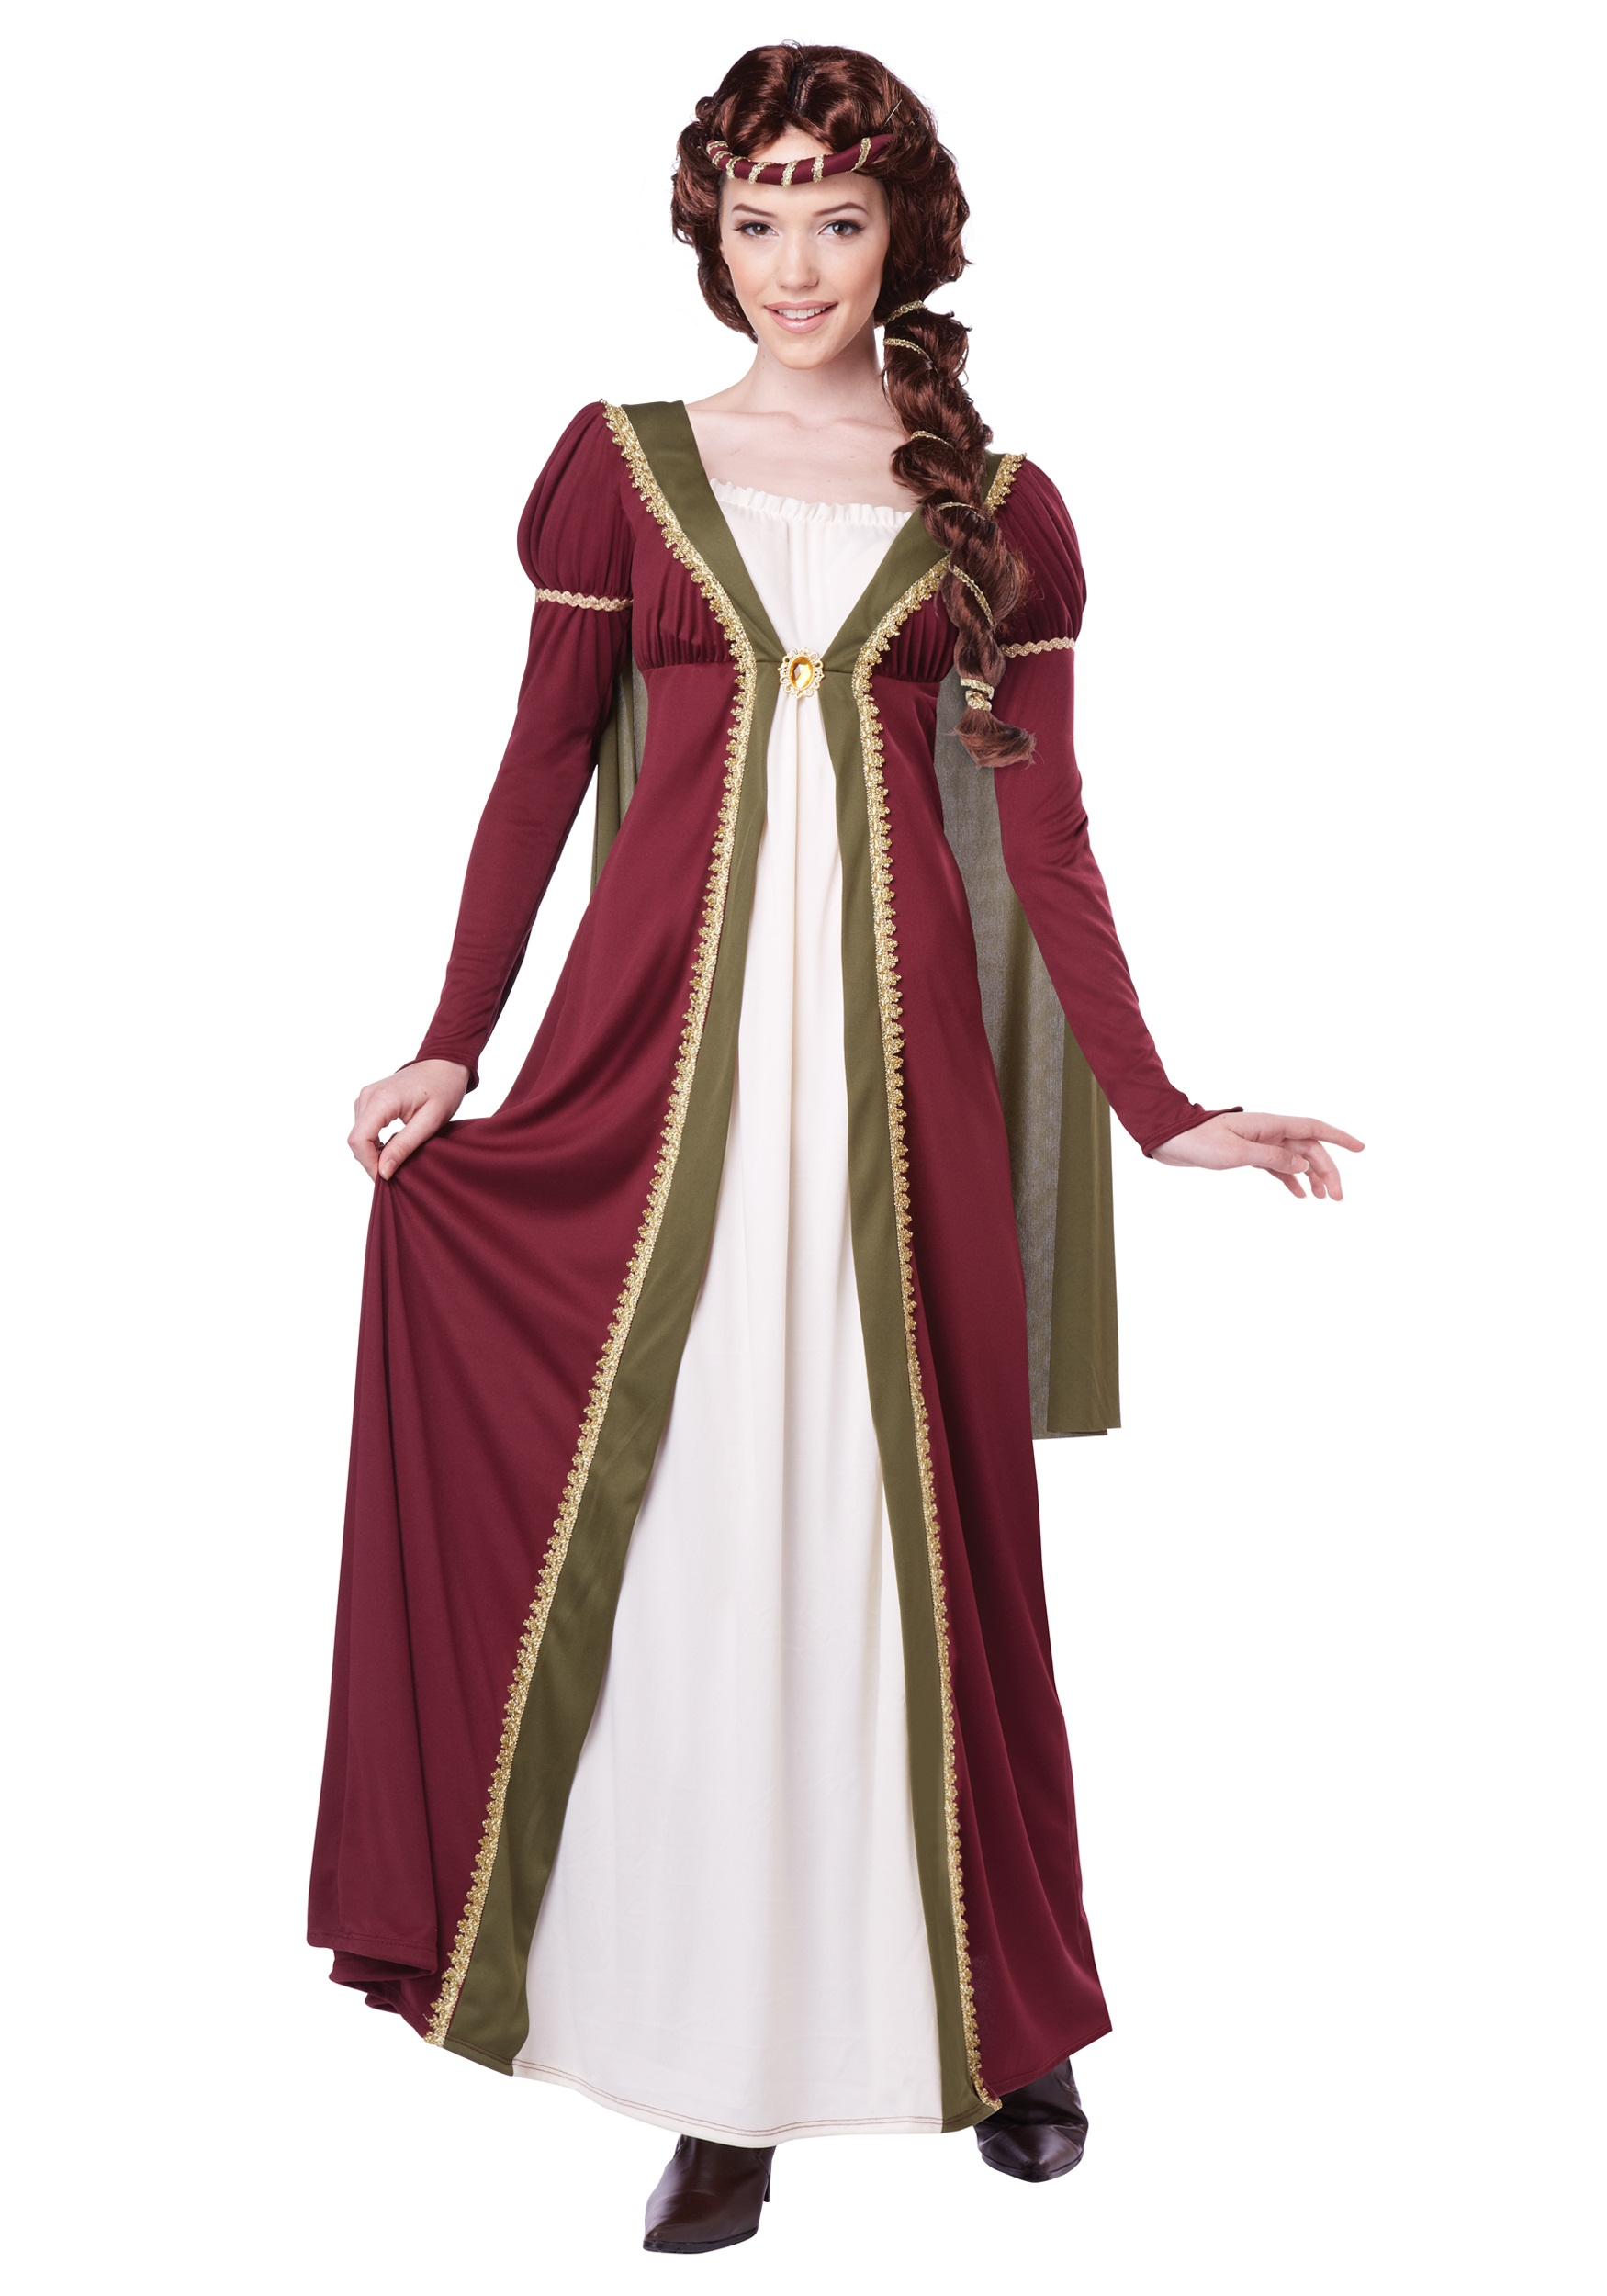 womens medieval maiden costume. Black Bedroom Furniture Sets. Home Design Ideas